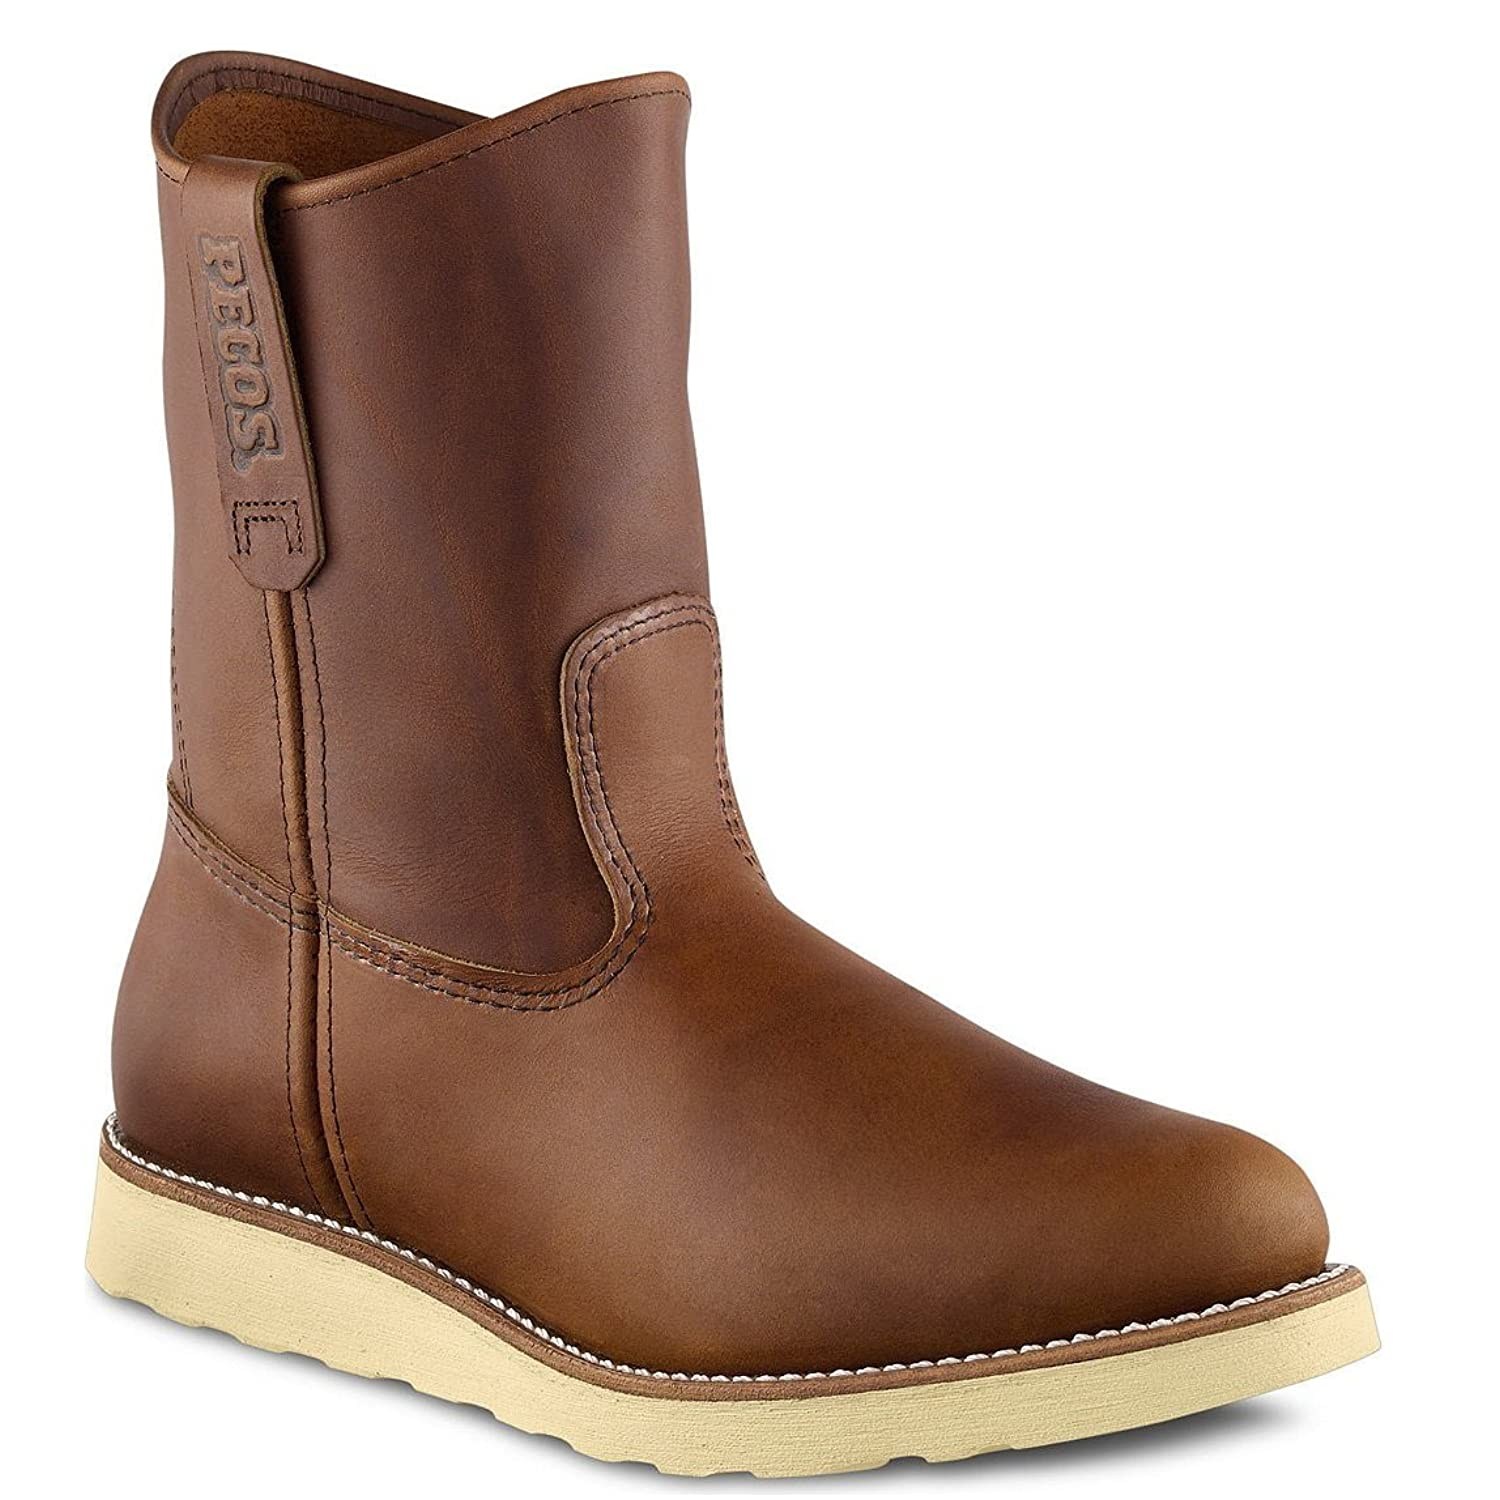 Amazon.com | Red Wing 866 Men's 9-inch Pull-on Boot (9 EEE) | Boots